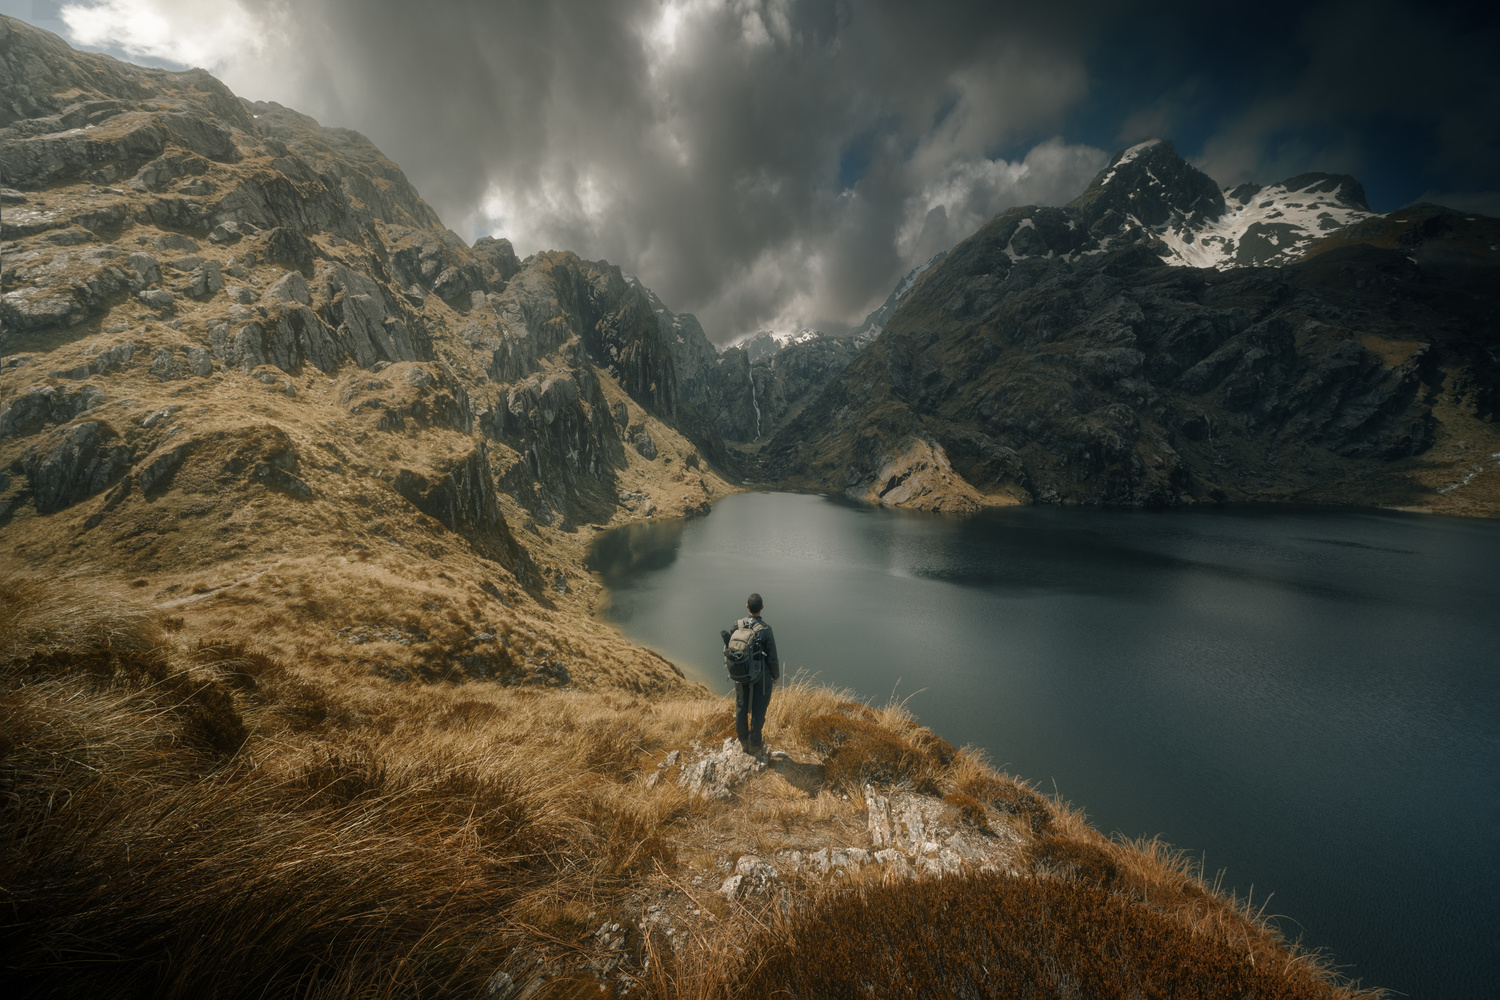 Gazing at Lake Harris on the Routeburn Track, New Zealand by DaniGviews /Daniel